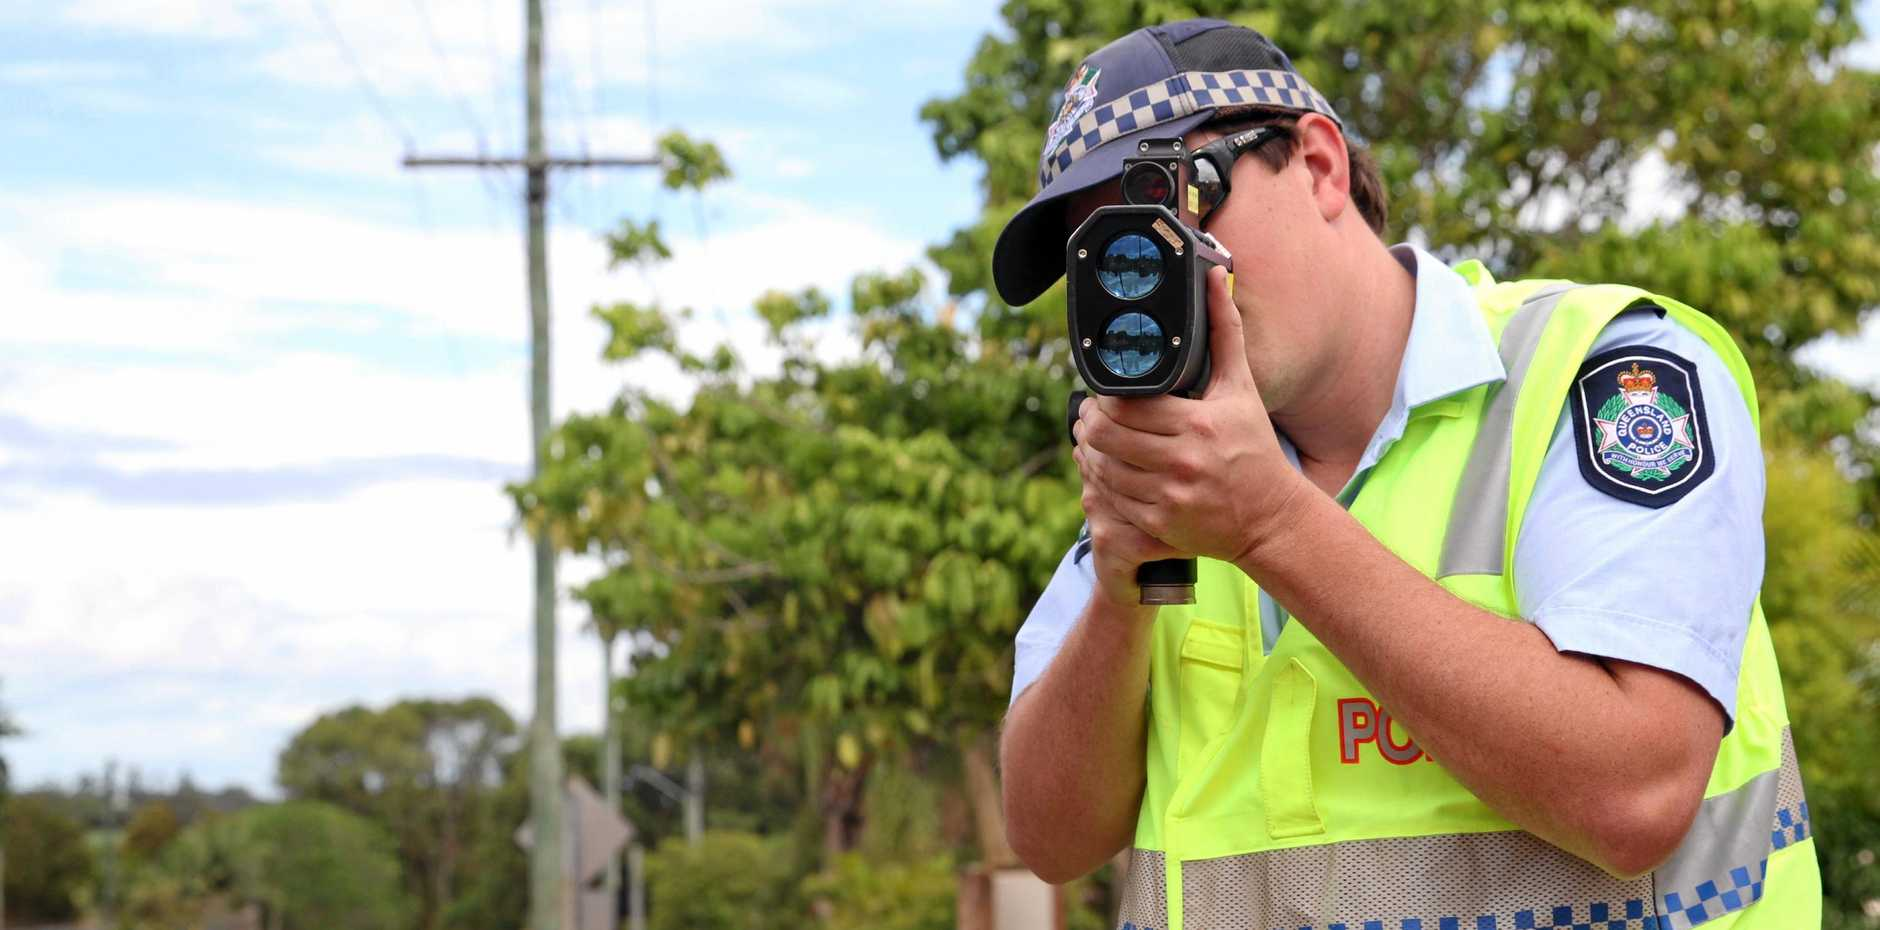 A Bundy man has been clocked at more than 160km/h on the Bruce Hwy.